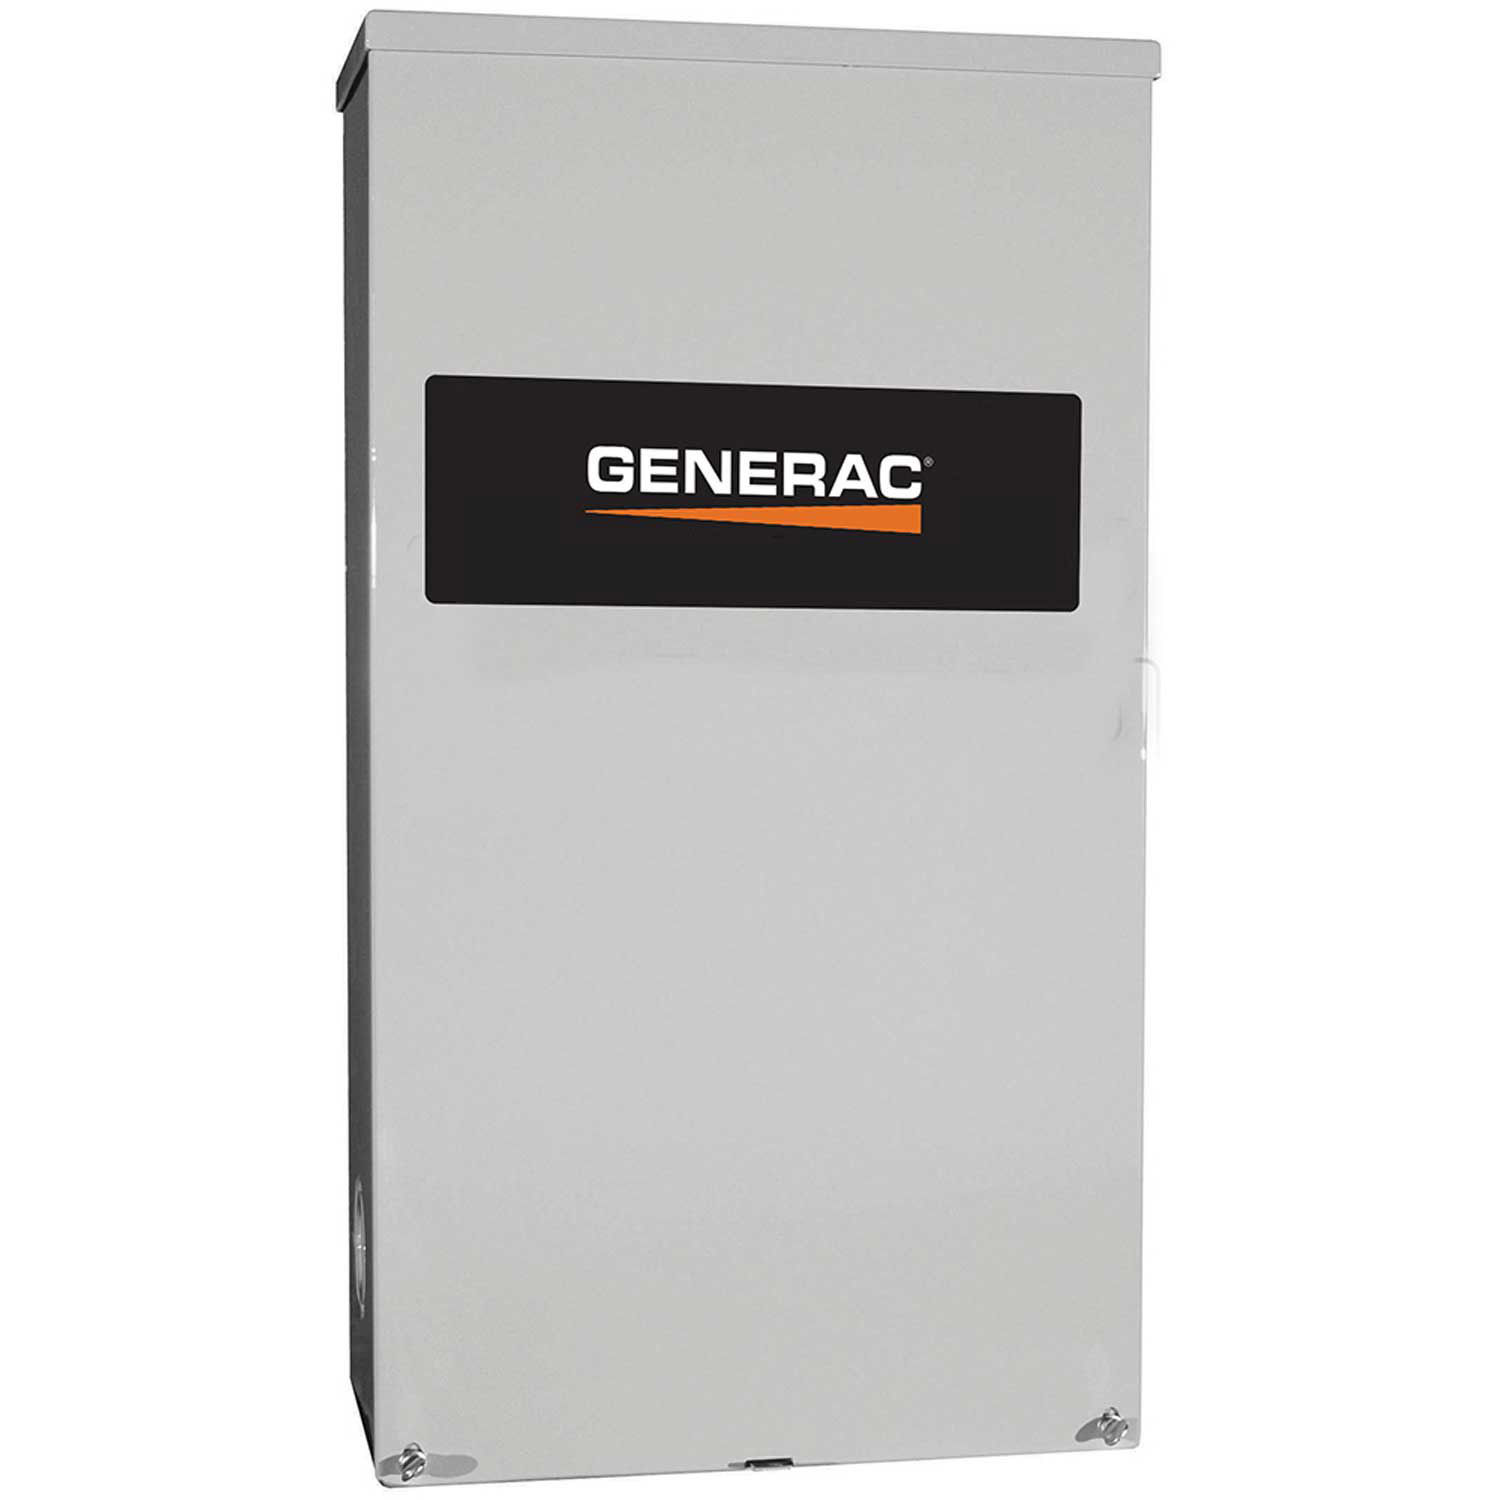 Generac 200a Auto Transfer Switch Service Rated 120  240v 1